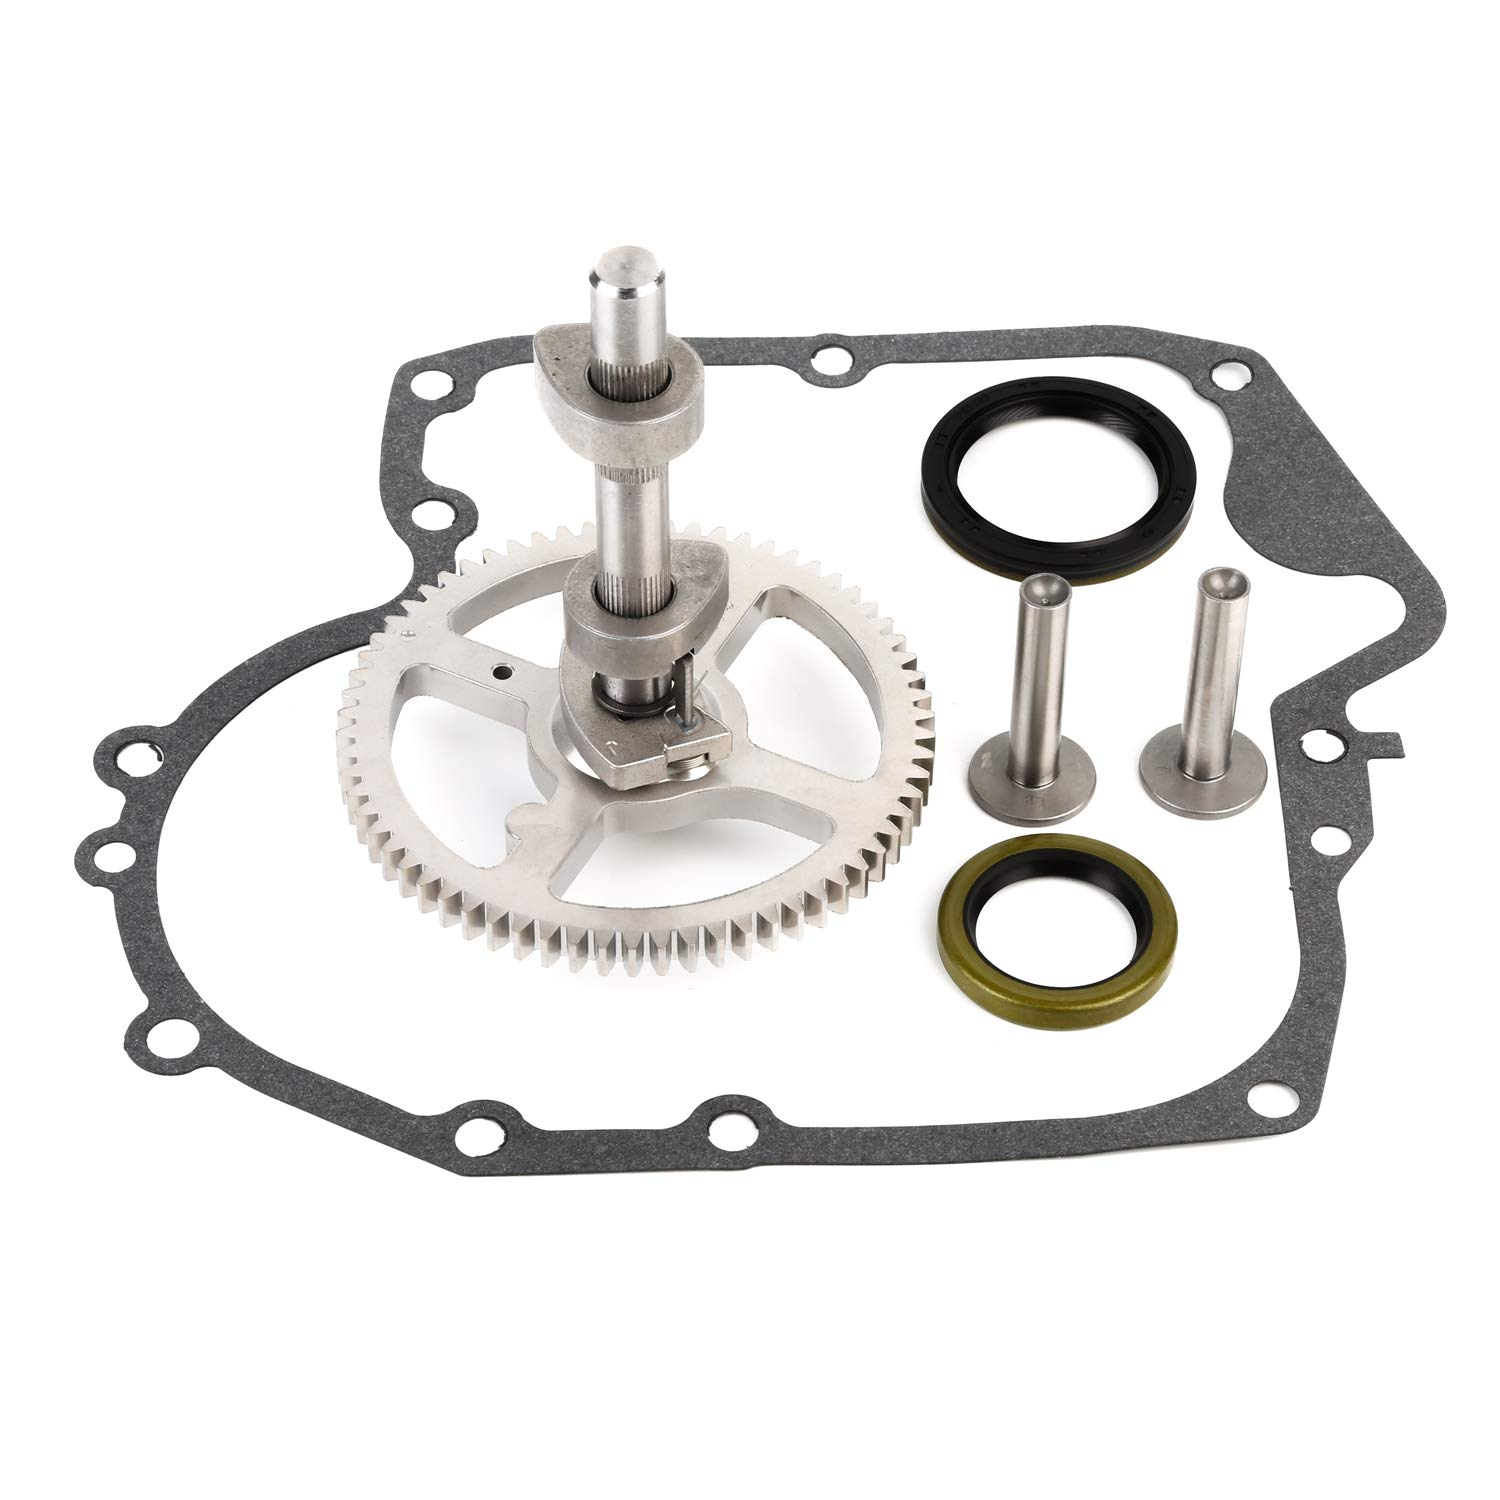 CQYD New Camshaft kit for Briggs & Stratton 793880 Replaces # 793583, 792681, 791942, 795102 Crankcase Gasket Oil Seal